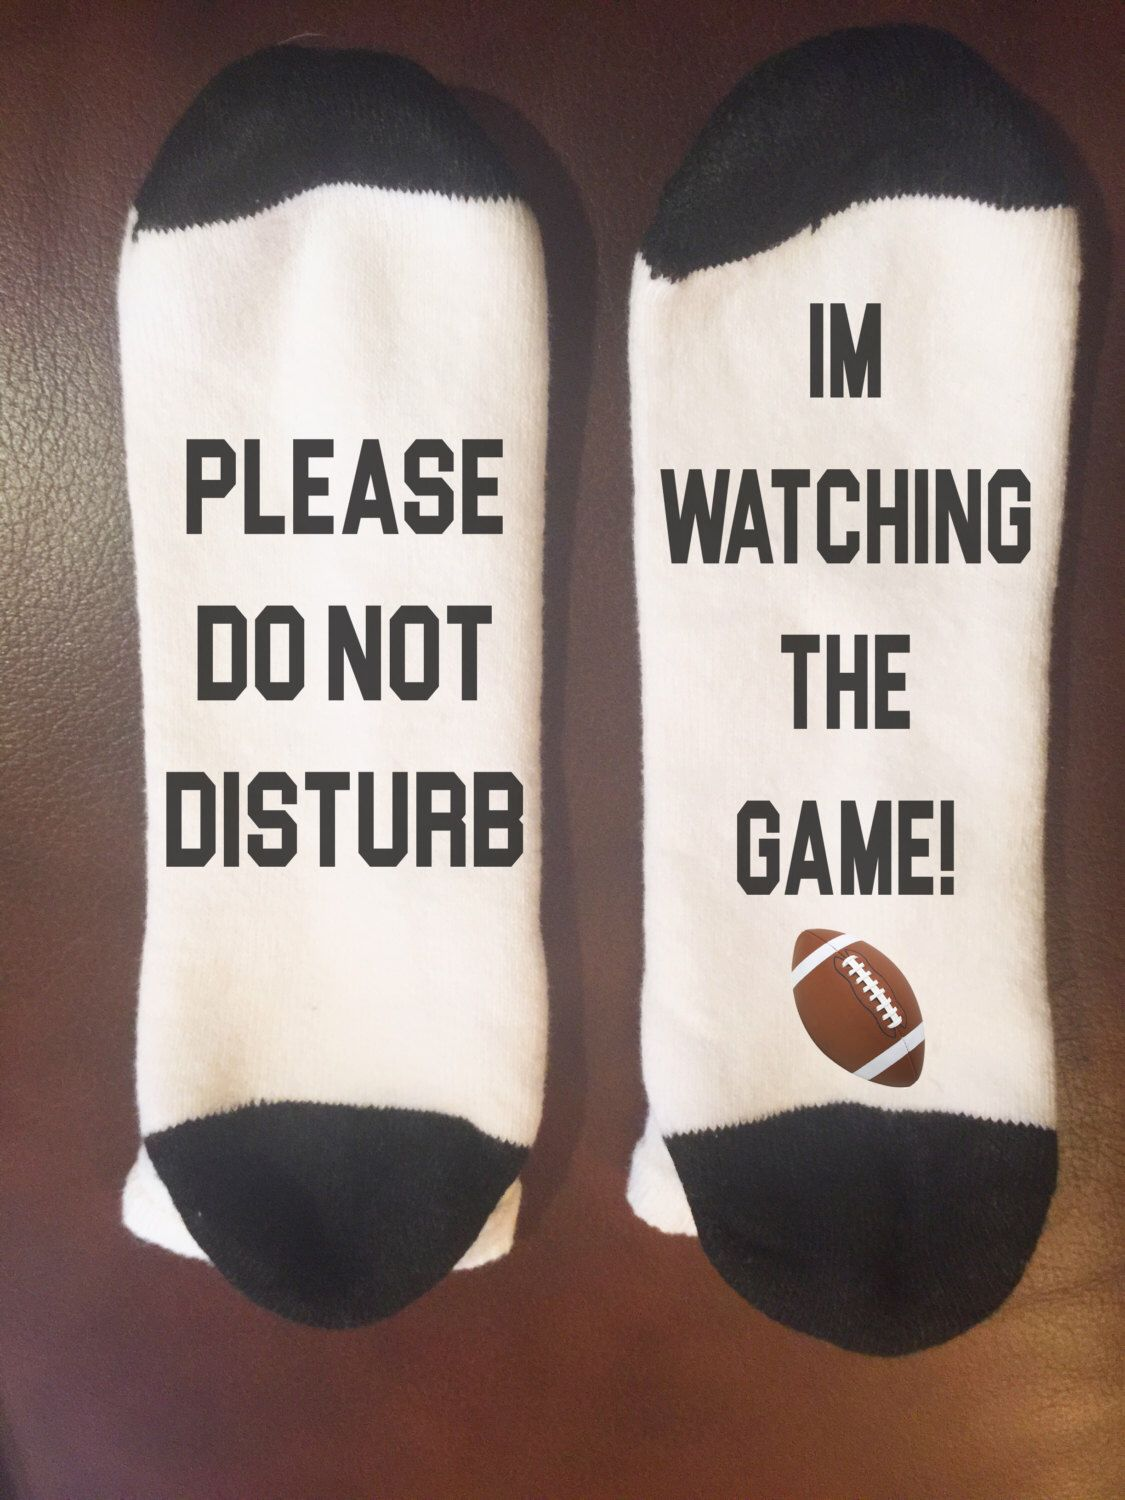 b05ad4487c94 If you can read i'm watching the game socks | Please Do Not Disturb | If  you can read this socks | f | silhouette | Funny socks, Kids socks, Sport  socks